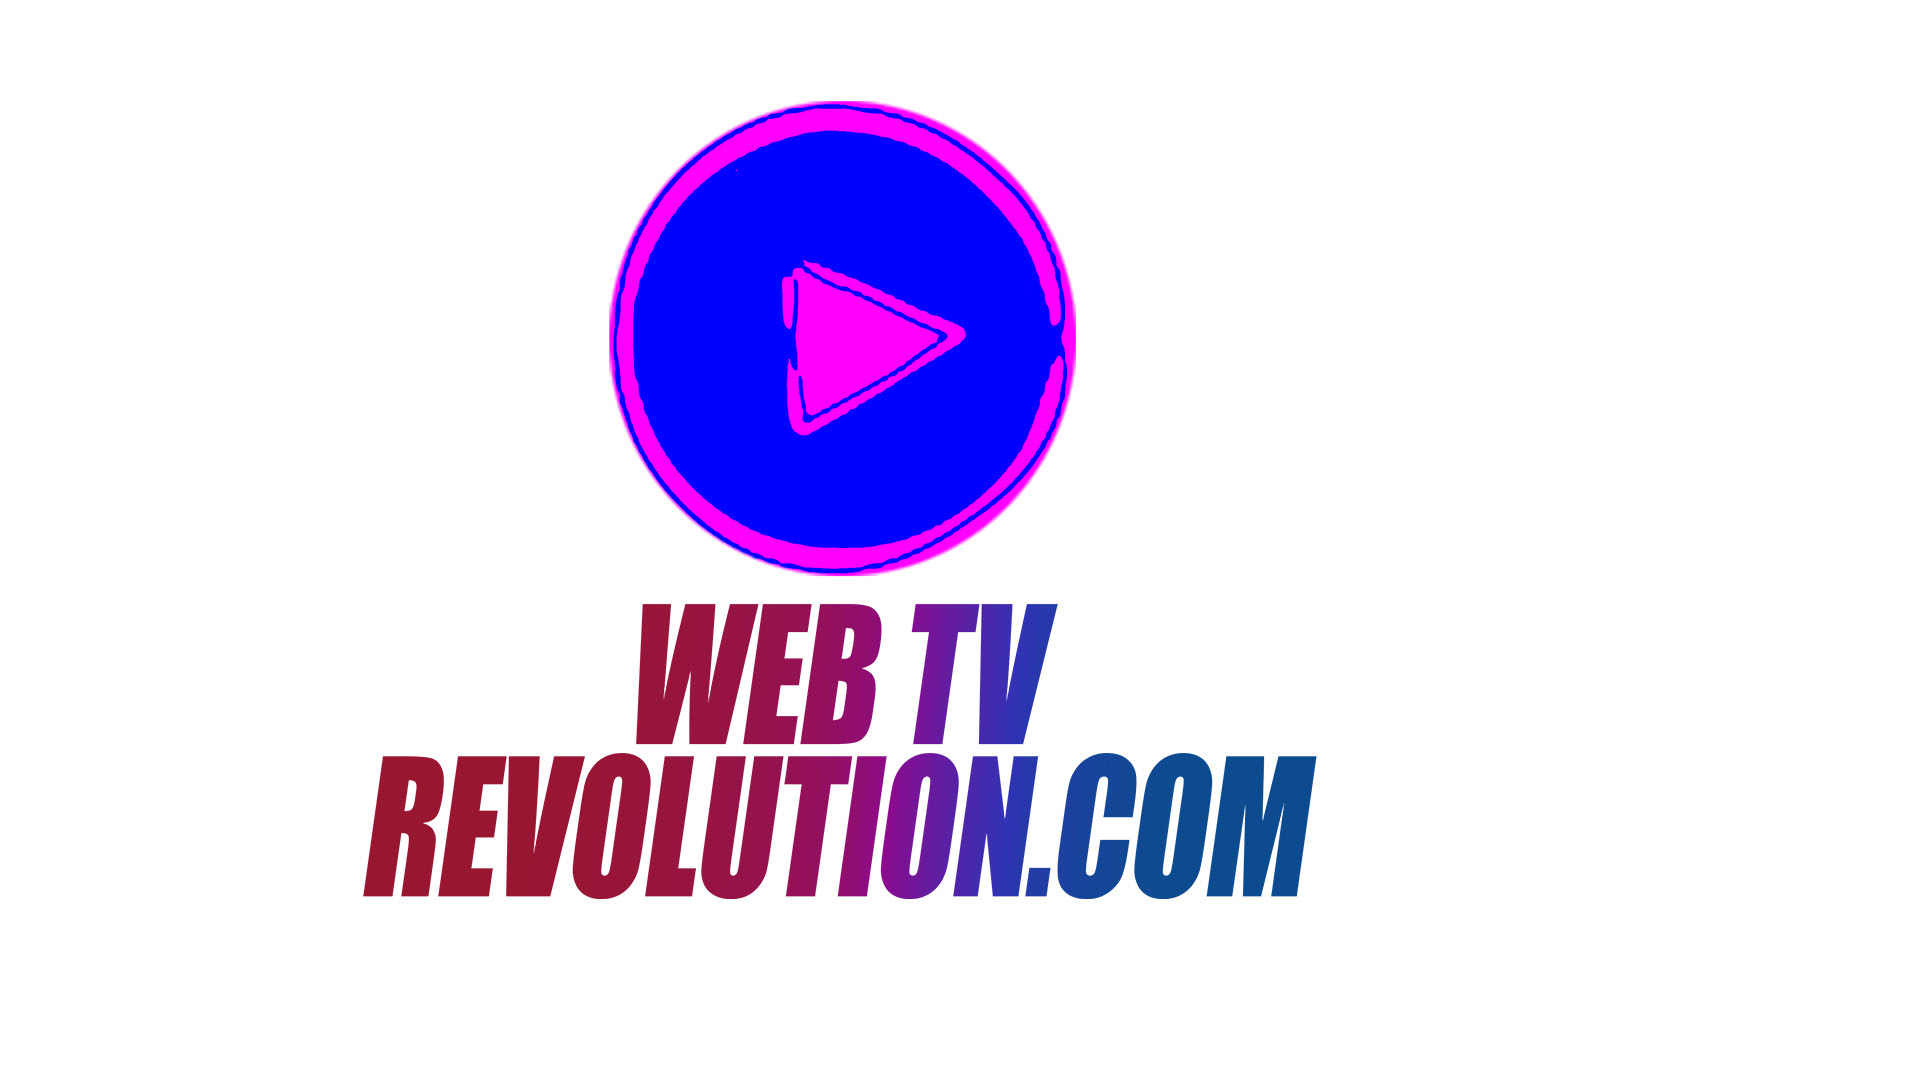 Web TV Revolution